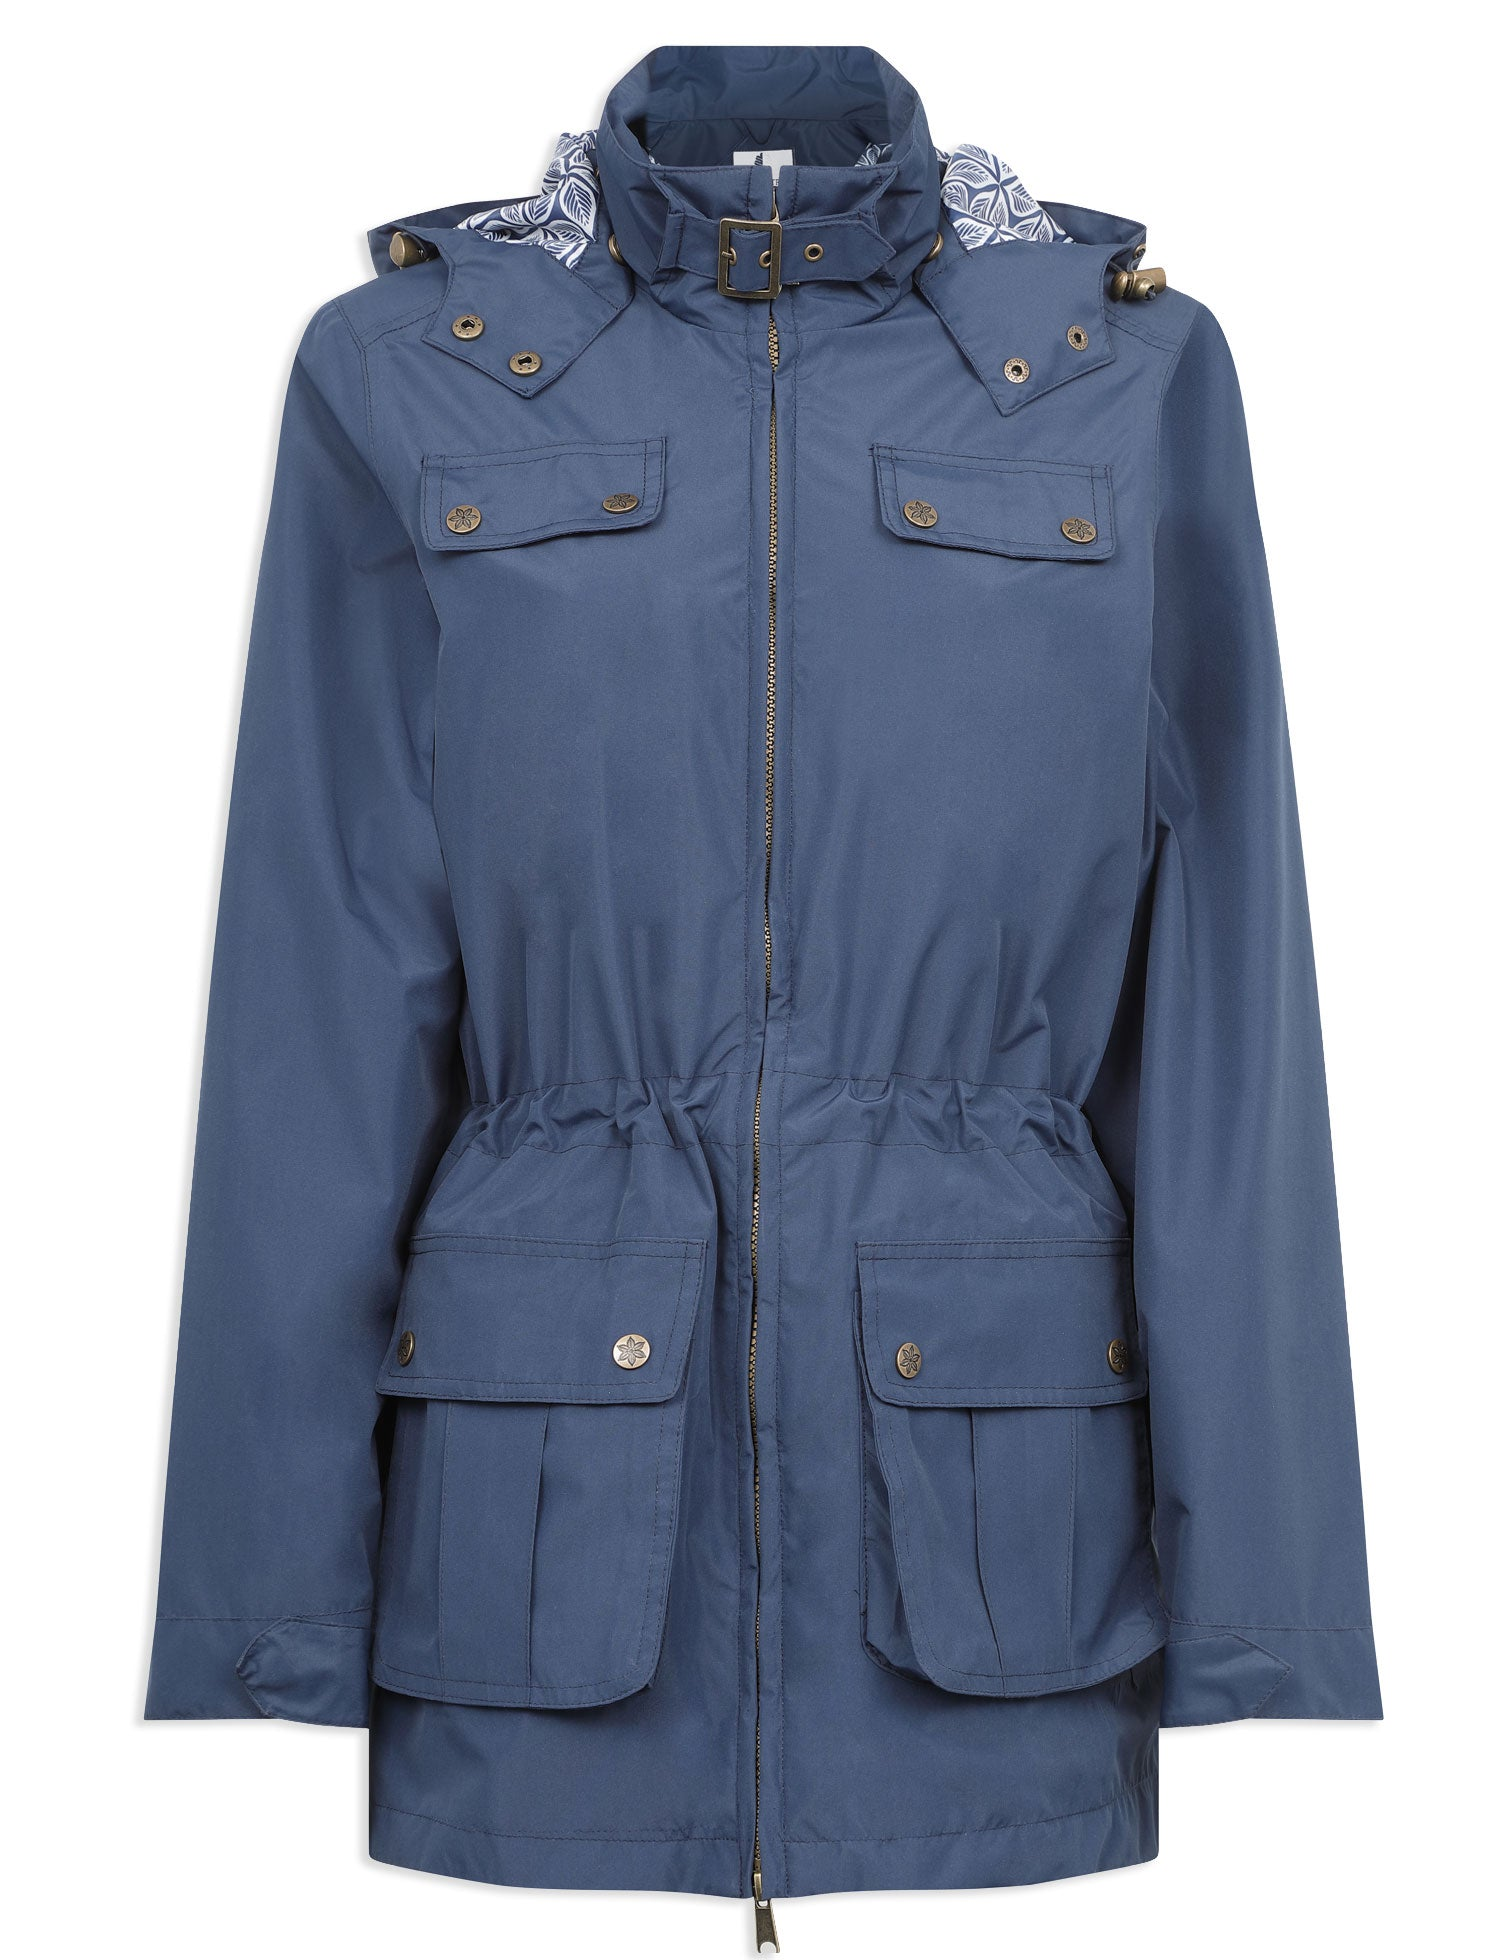 Cromer Ladies Summer Parka by Champion Country Estate navy